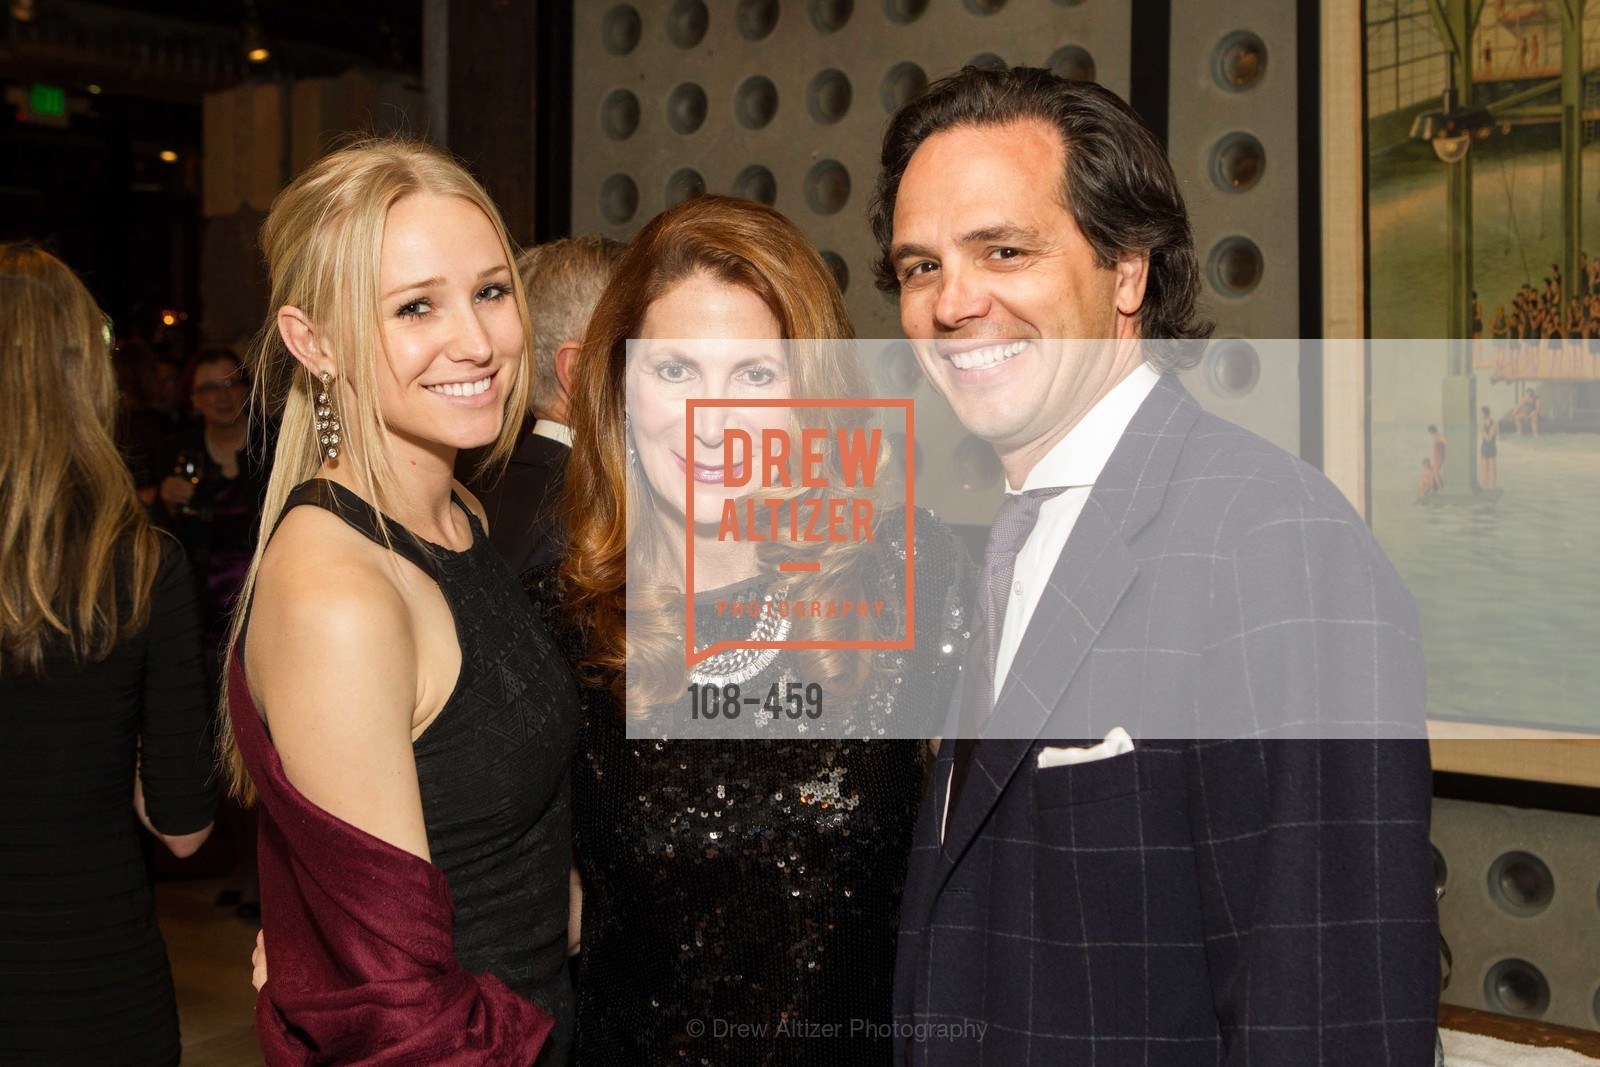 Juliana Del Beccaro, Patricia Ferrin Loucks, Thomas Del Beccaro, 2014 SAN FRANCISCO BALLET OPENING NIGHT GALA Patron and Sponsor Reception, US. US, January 14th, 2014,Drew Altizer, Drew Altizer Photography, full-service agency, private events, San Francisco photographer, photographer california